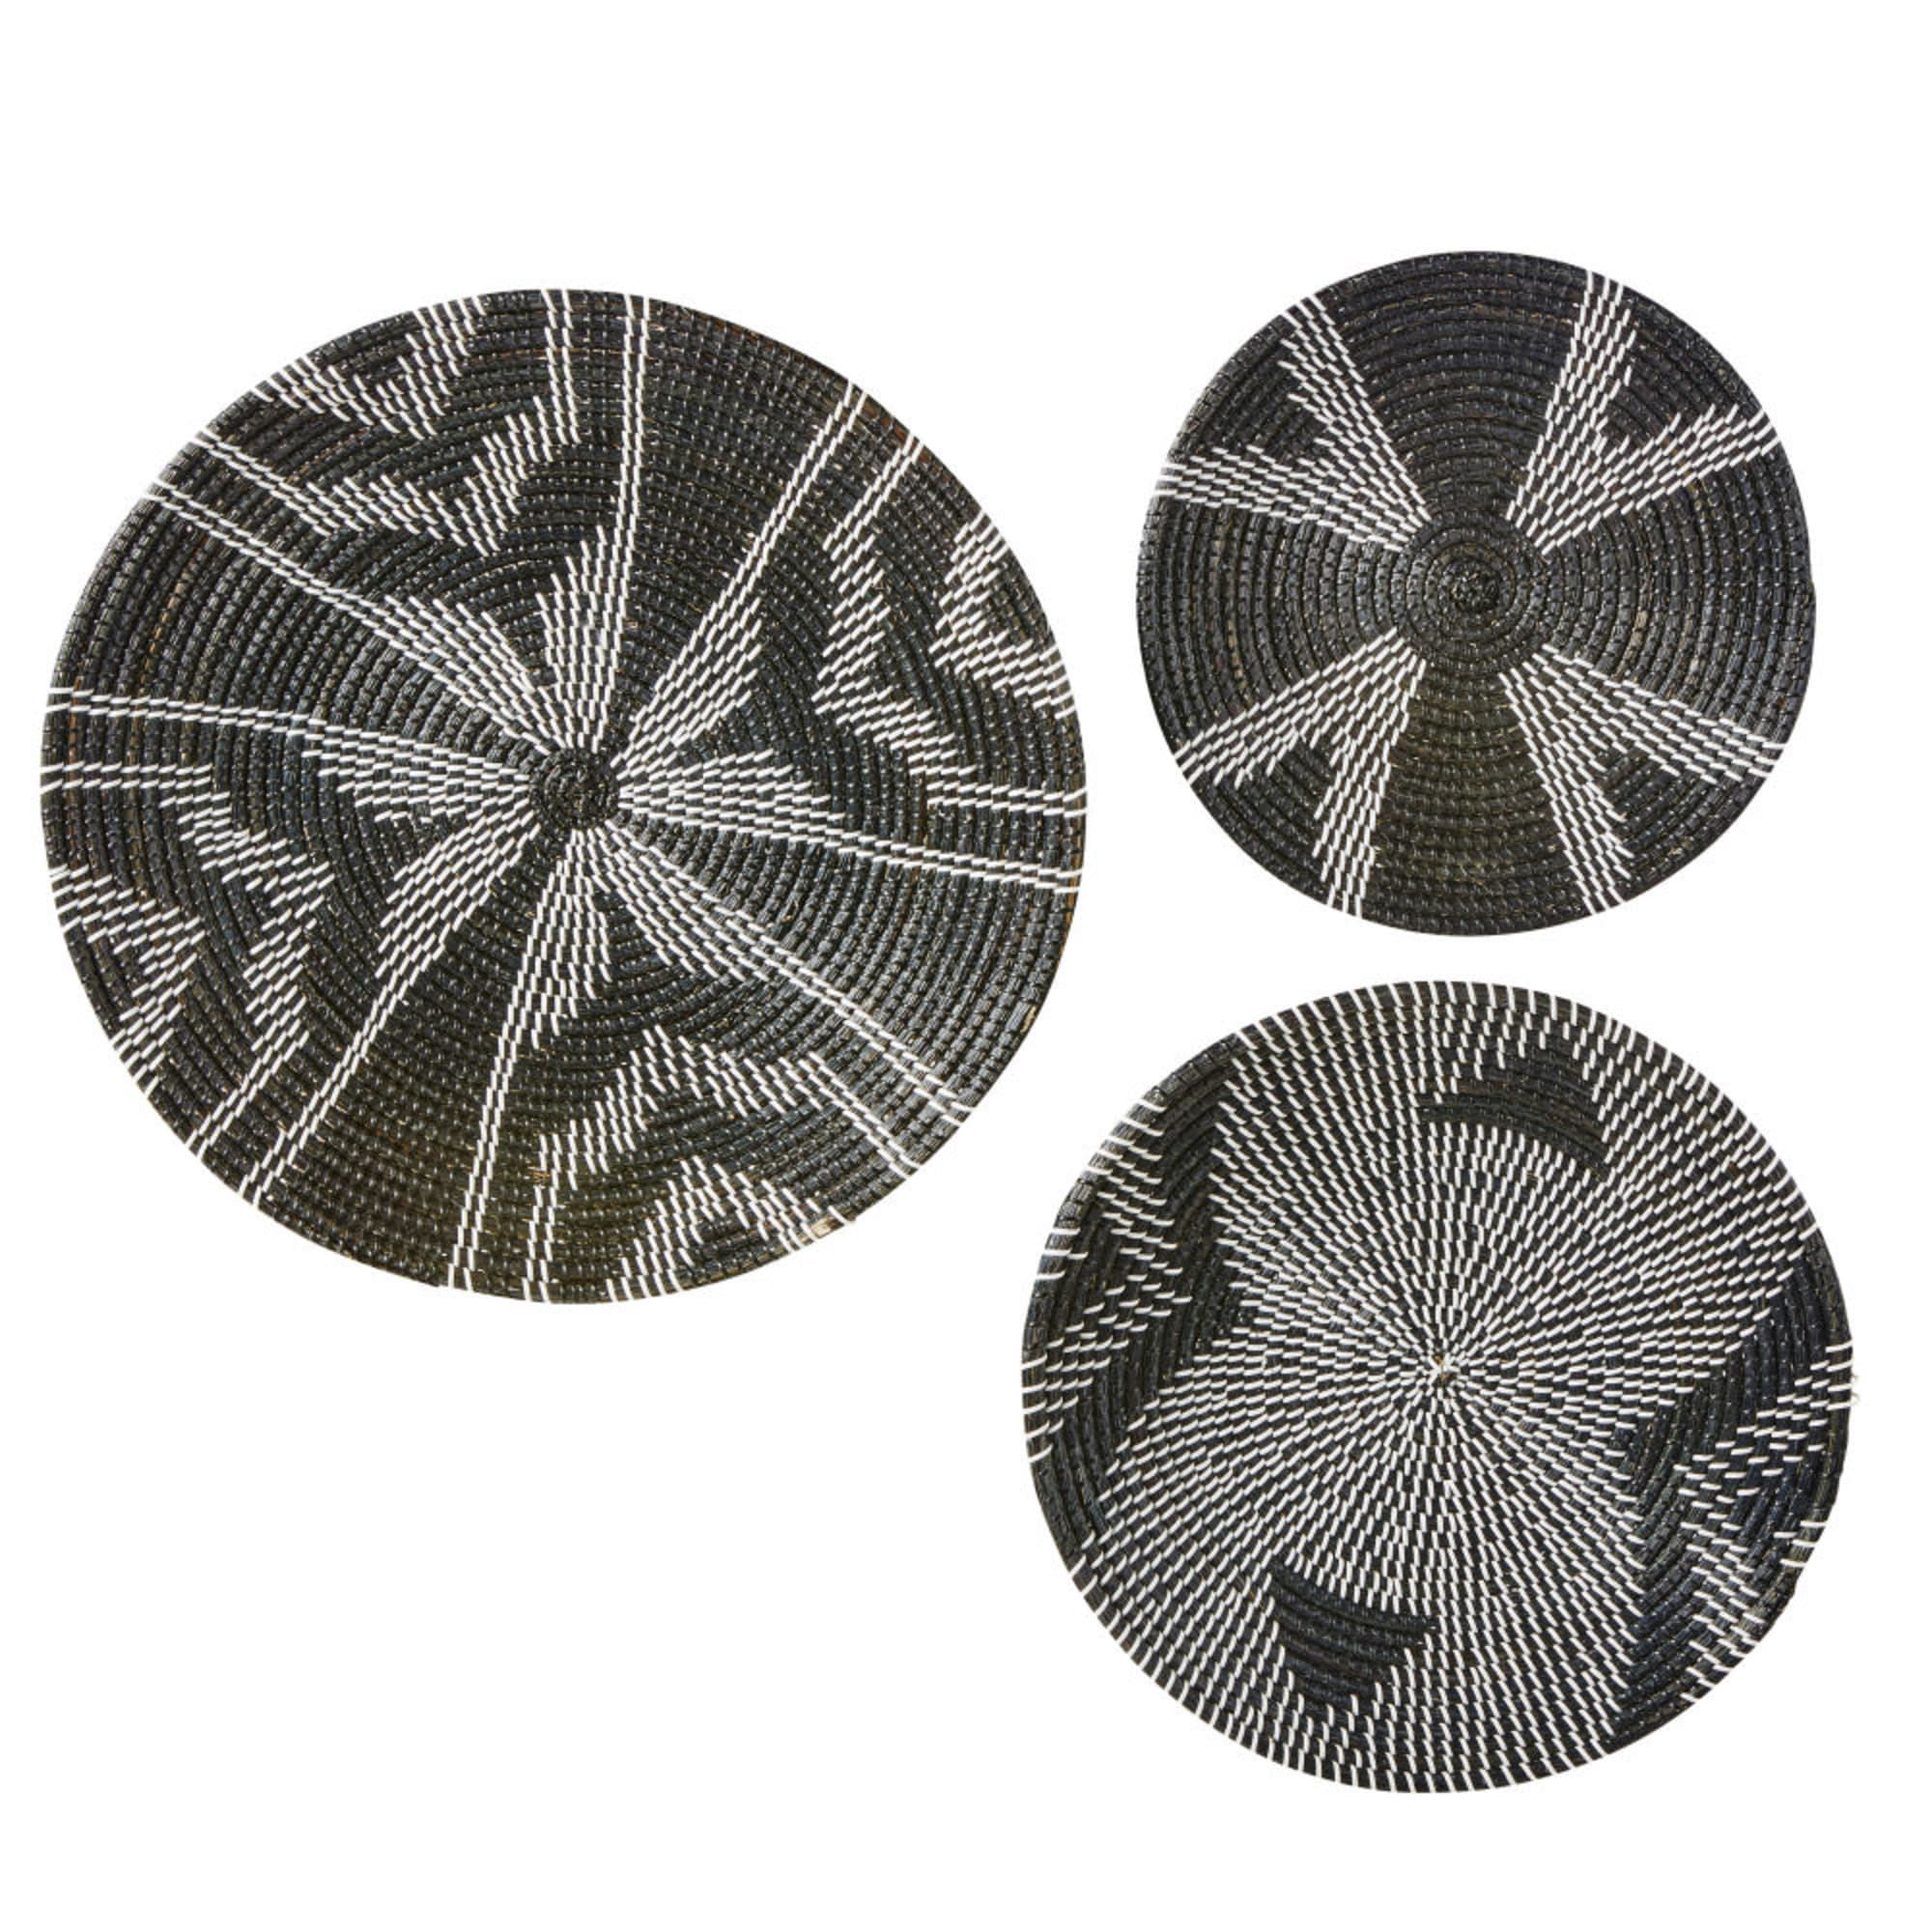 Decorative black seagrass woven placemats wicker wall hanging room decoration baskets